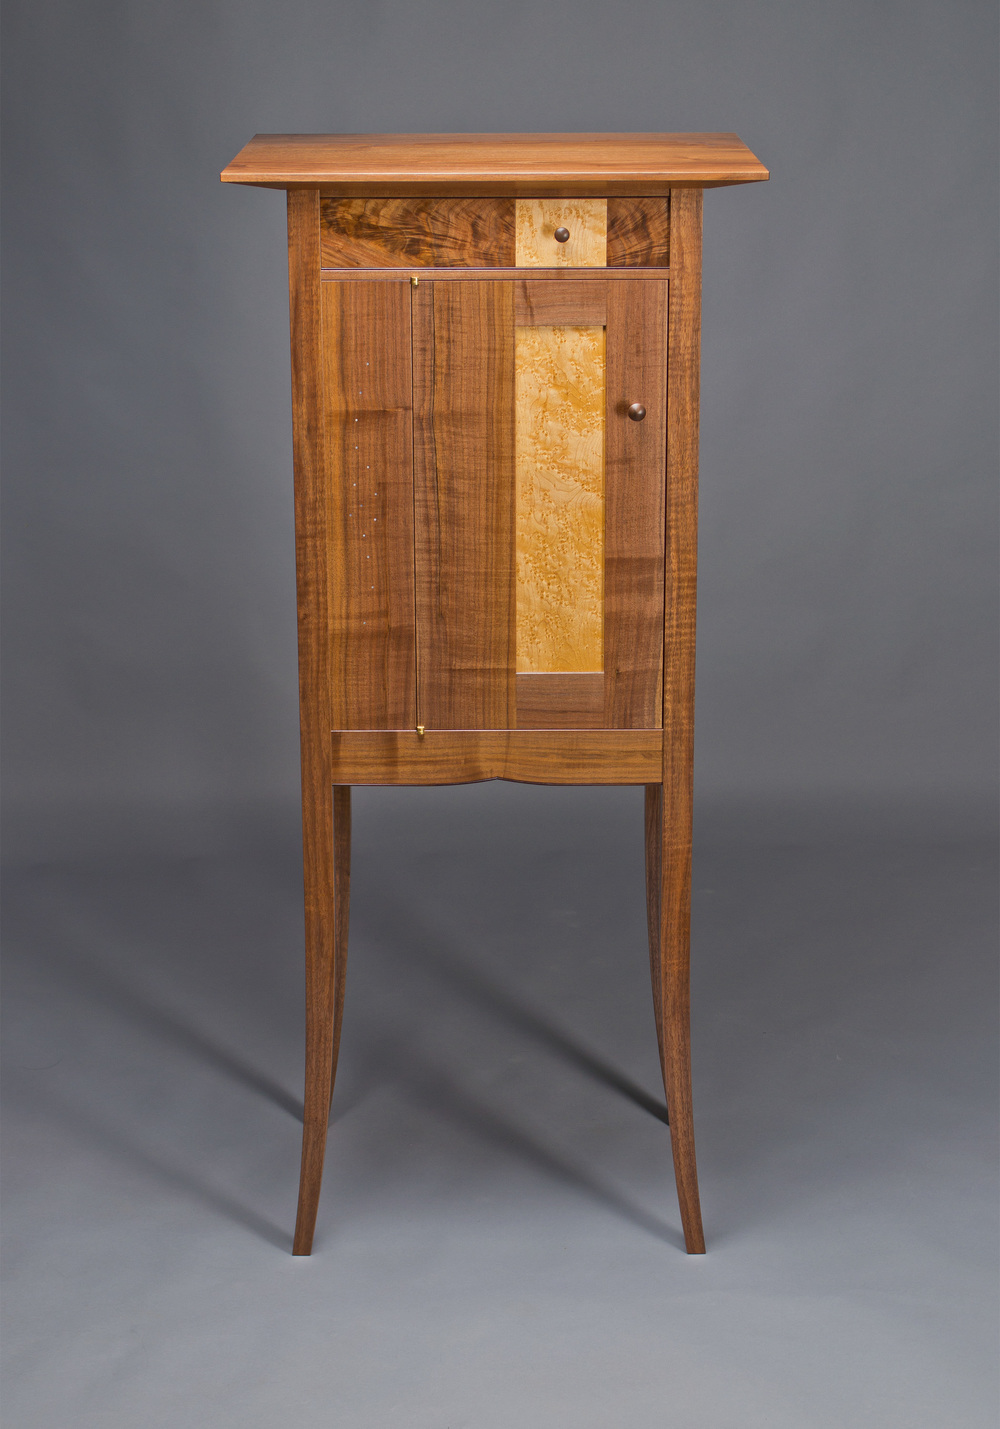 cabinet with curved legs made of black walnut and birds eye maple